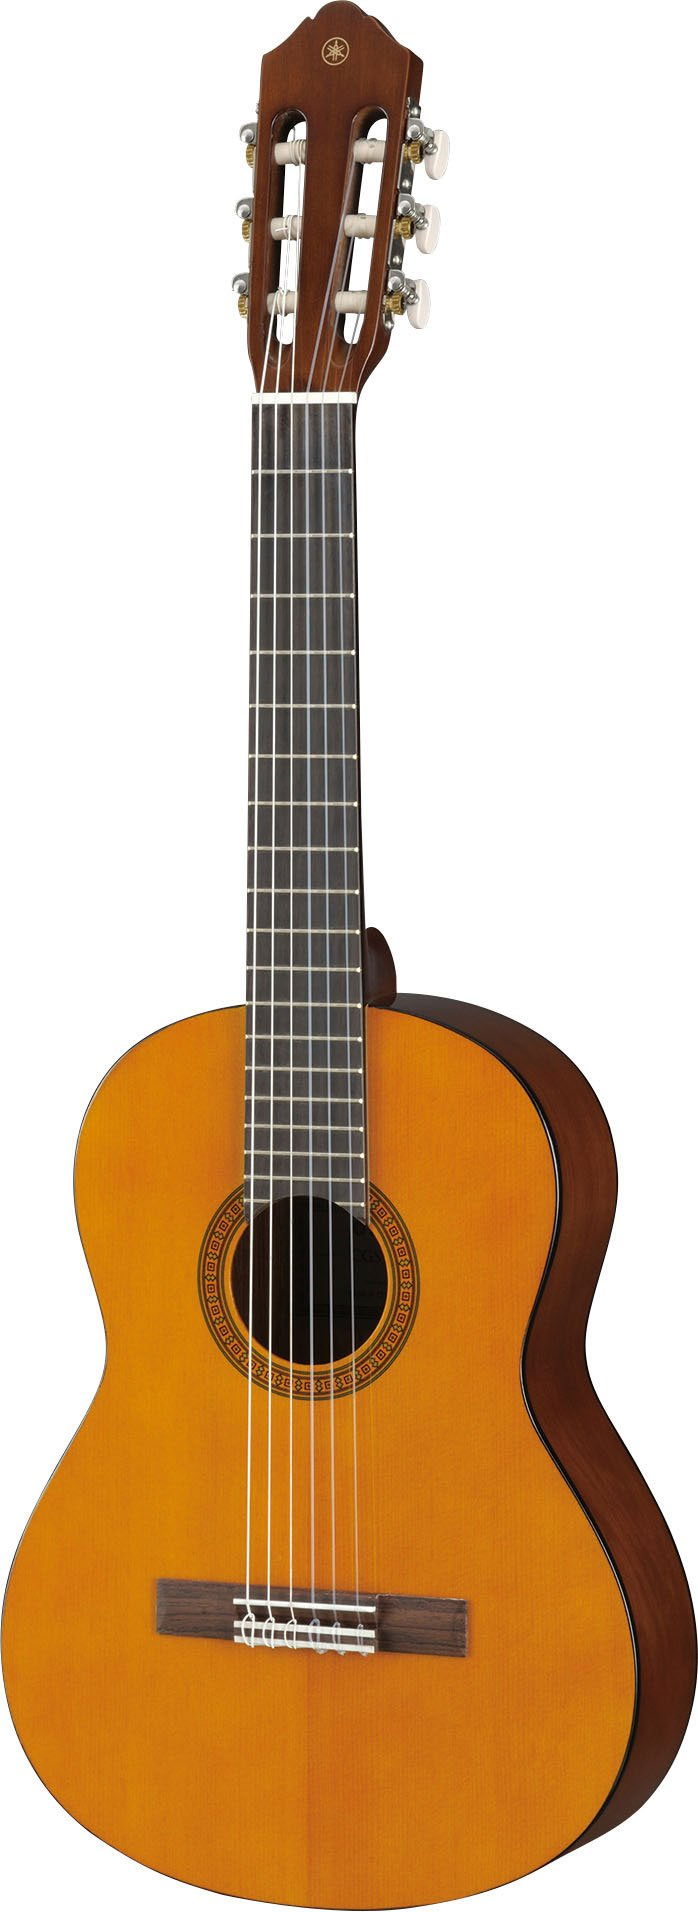 Yamaha CGS102A Half-Size Classical Guitar - Natural by Yamaha